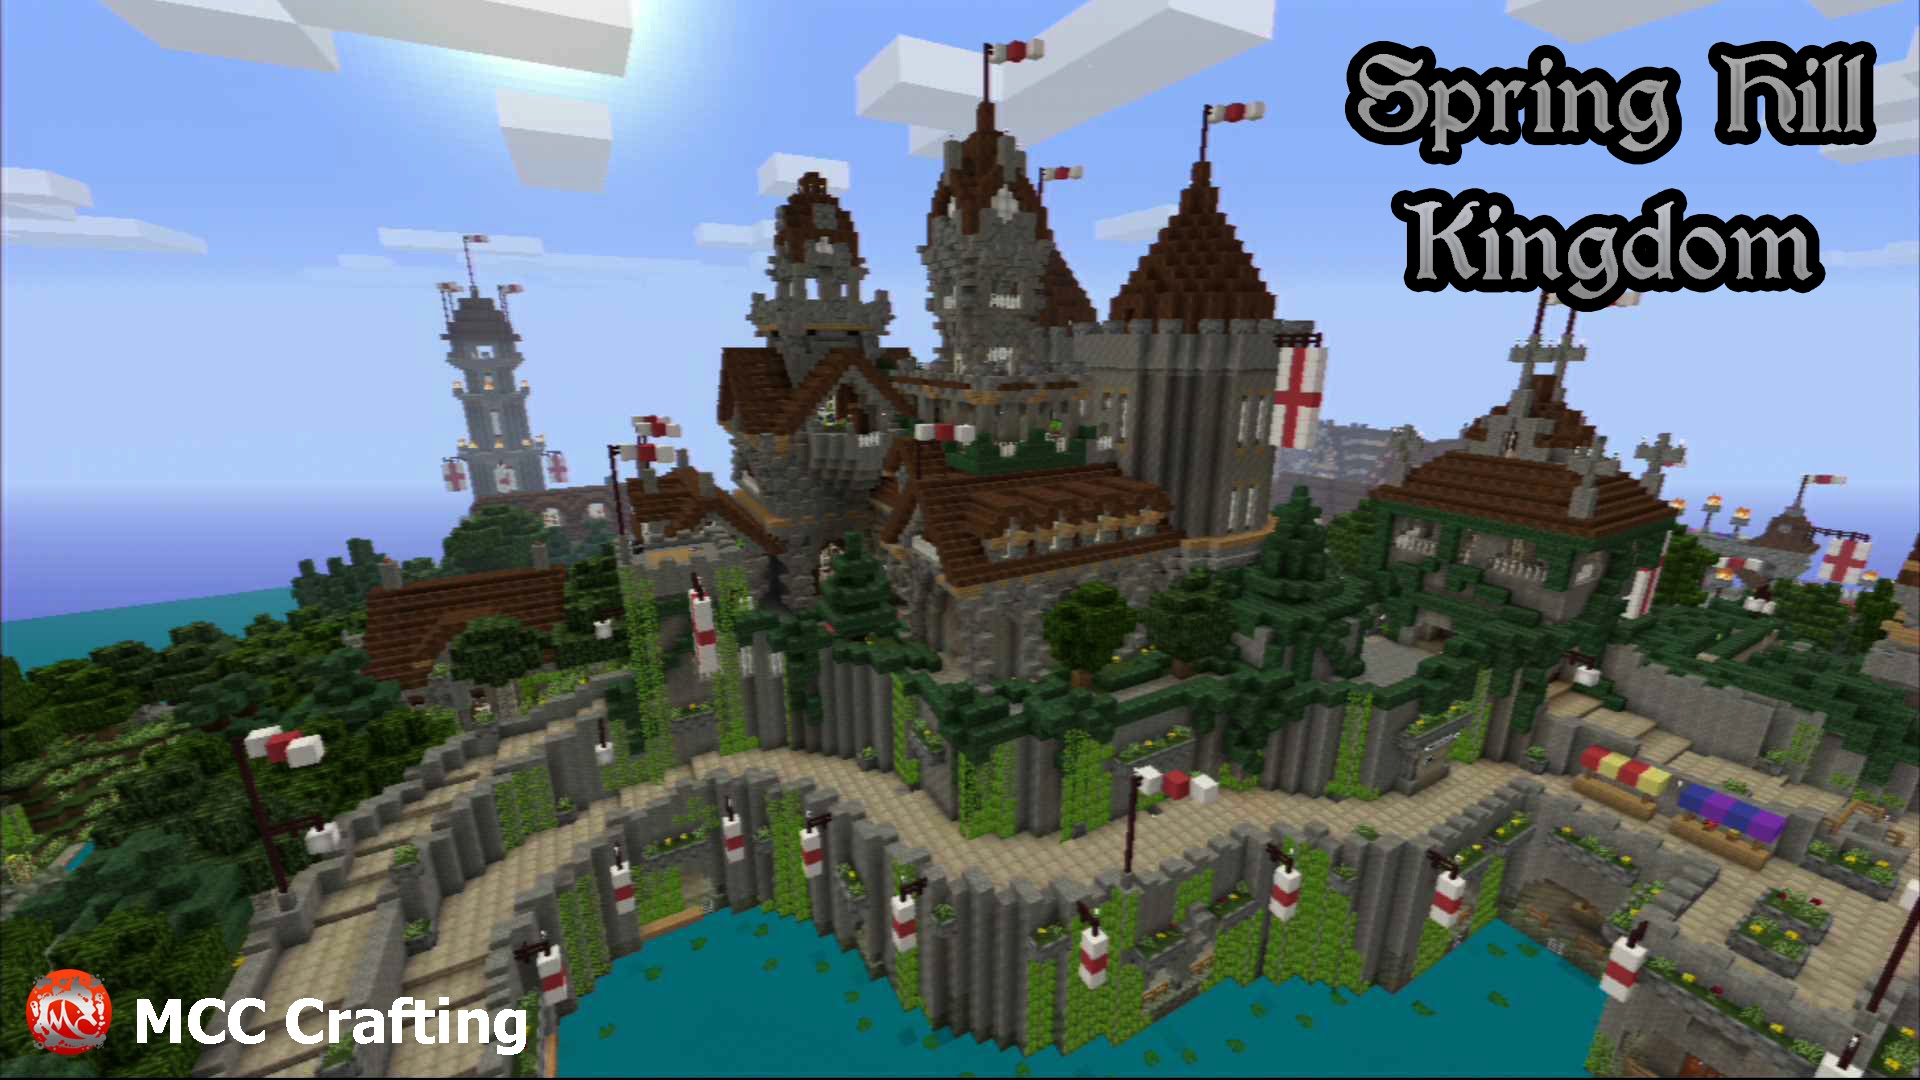 Ps3 spring hill kingdom download minecraft ps3 spring hill kingdom download gumiabroncs Image collections